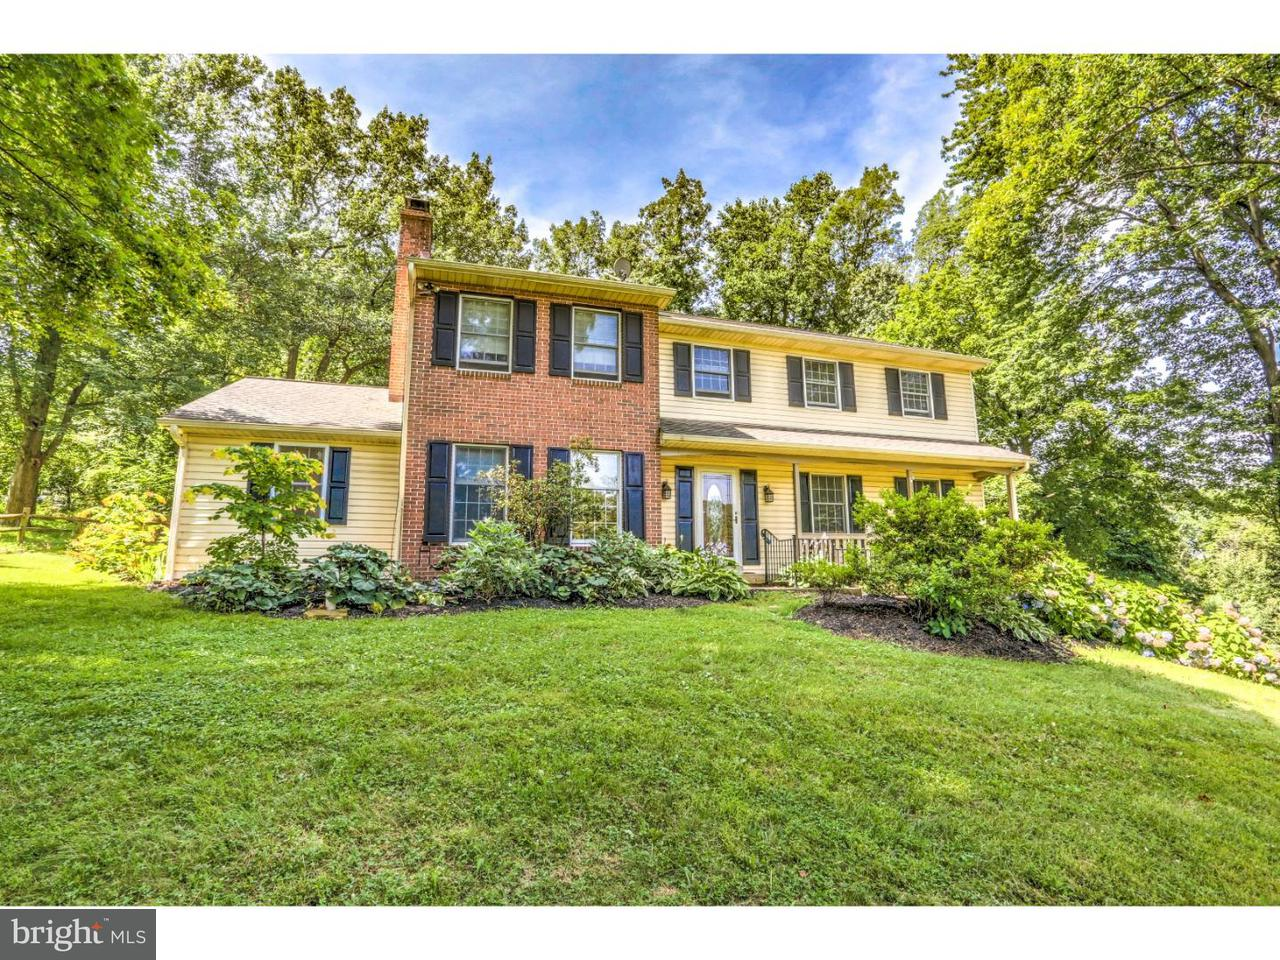 Single Family Home for Sale at 5420 RIDGE VIEW Drive Gap, Pennsylvania 17527 United States